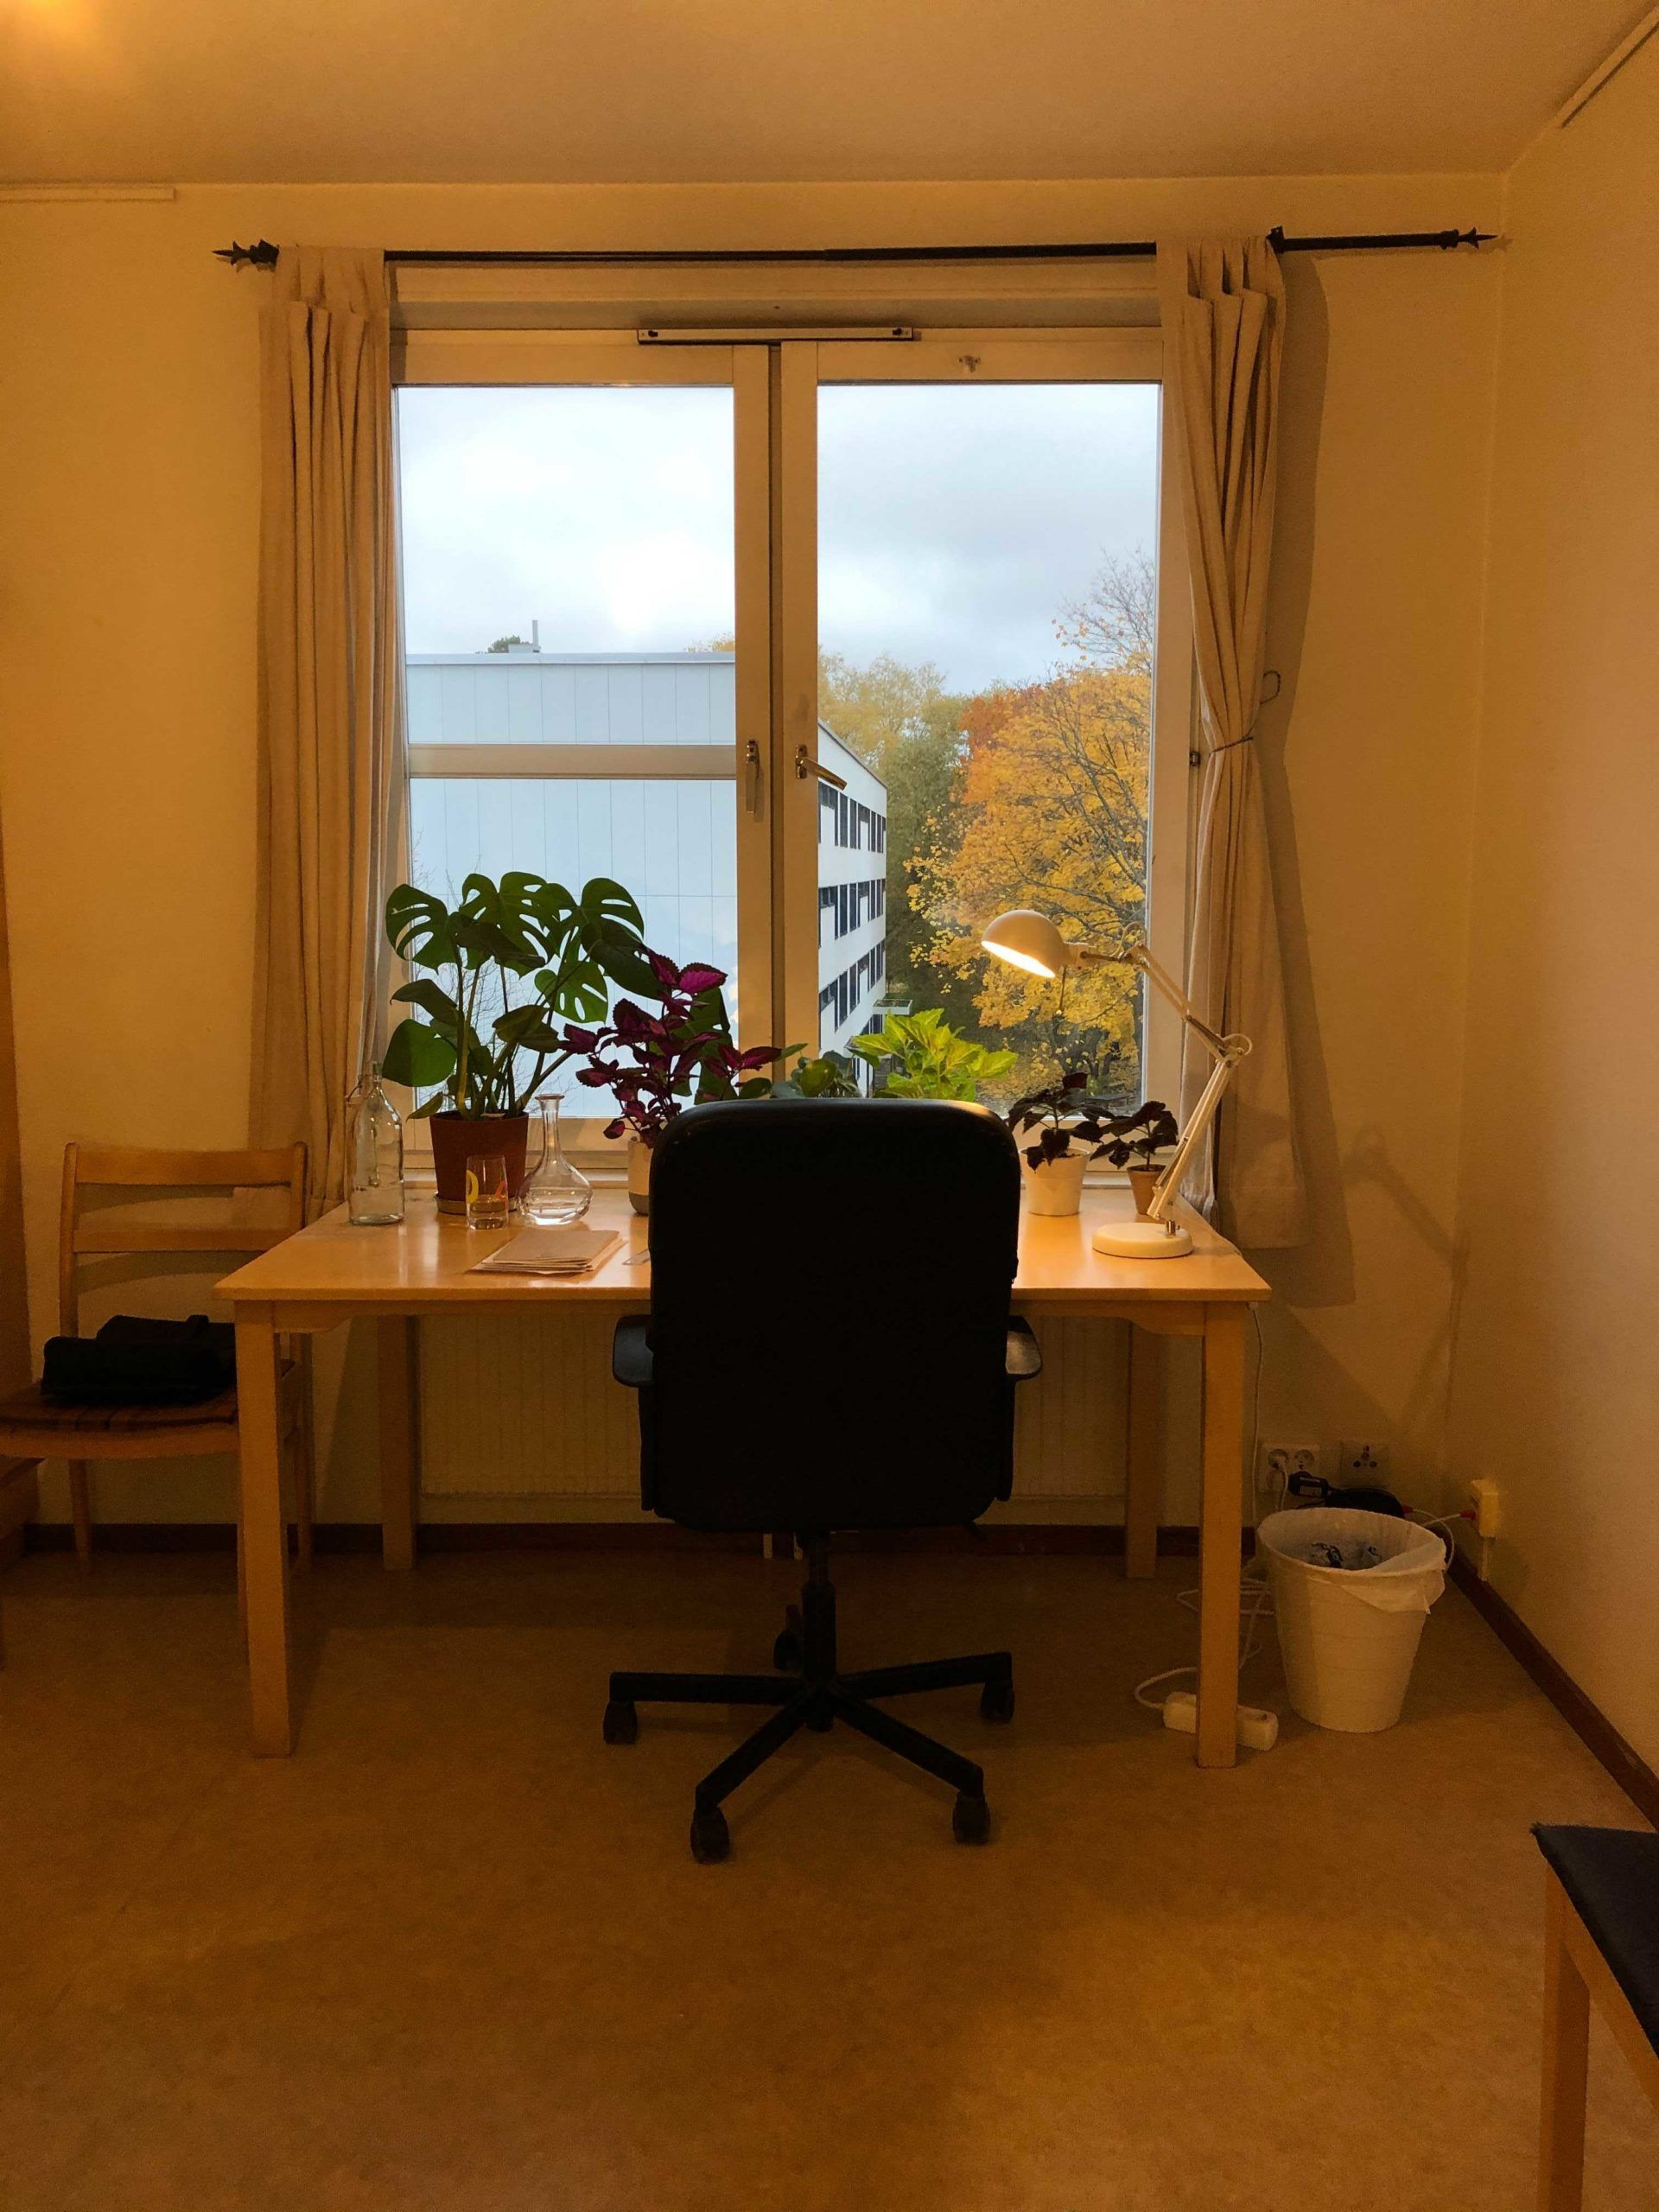 Desk and chair sit in front of large window with light shining through